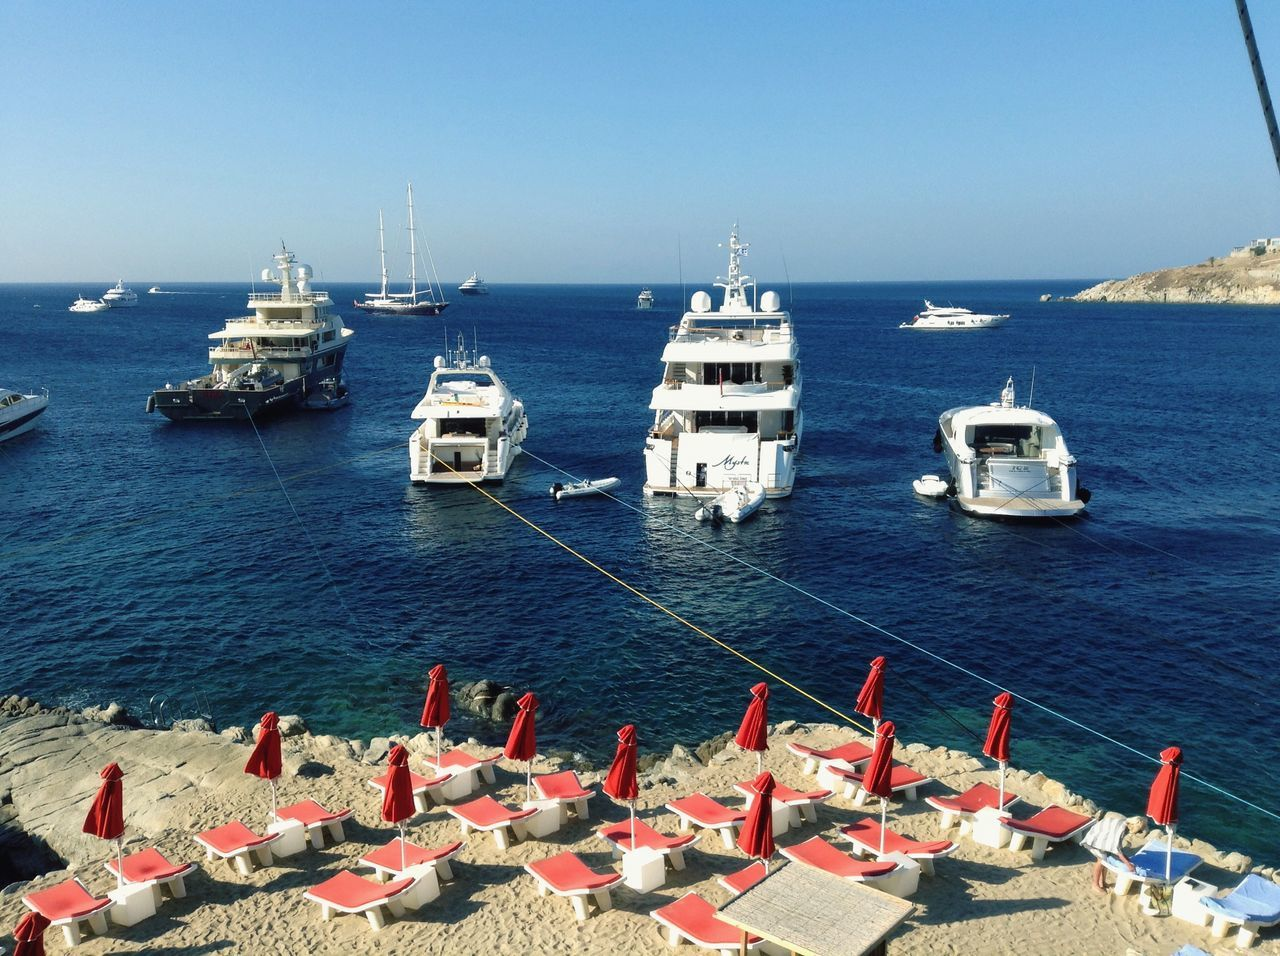 Summer Summer2015 Mykonos Yachts Yachtlife Beach Sunchair Sand Greece Island Sea Bluesea